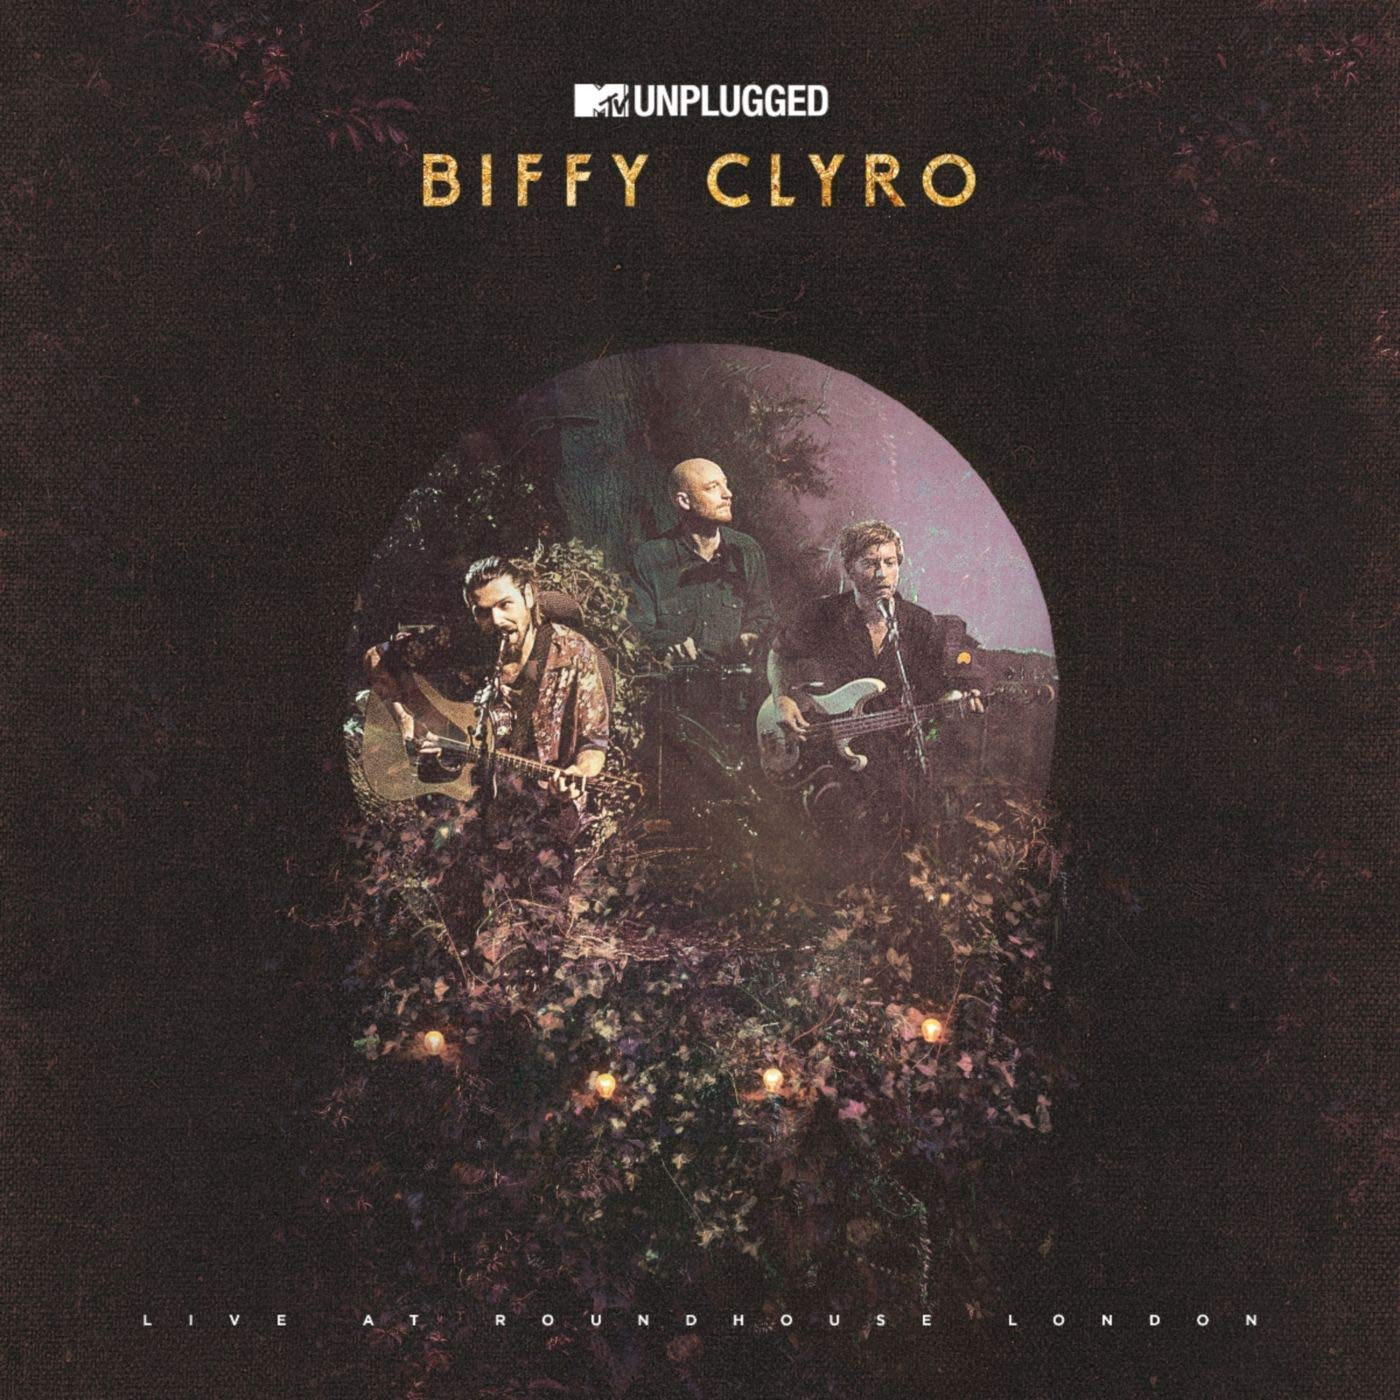 Biffy Clyro -MTV Unplugged  Release date :May 25, 2018  Label :Viacom  Credit :Mixer